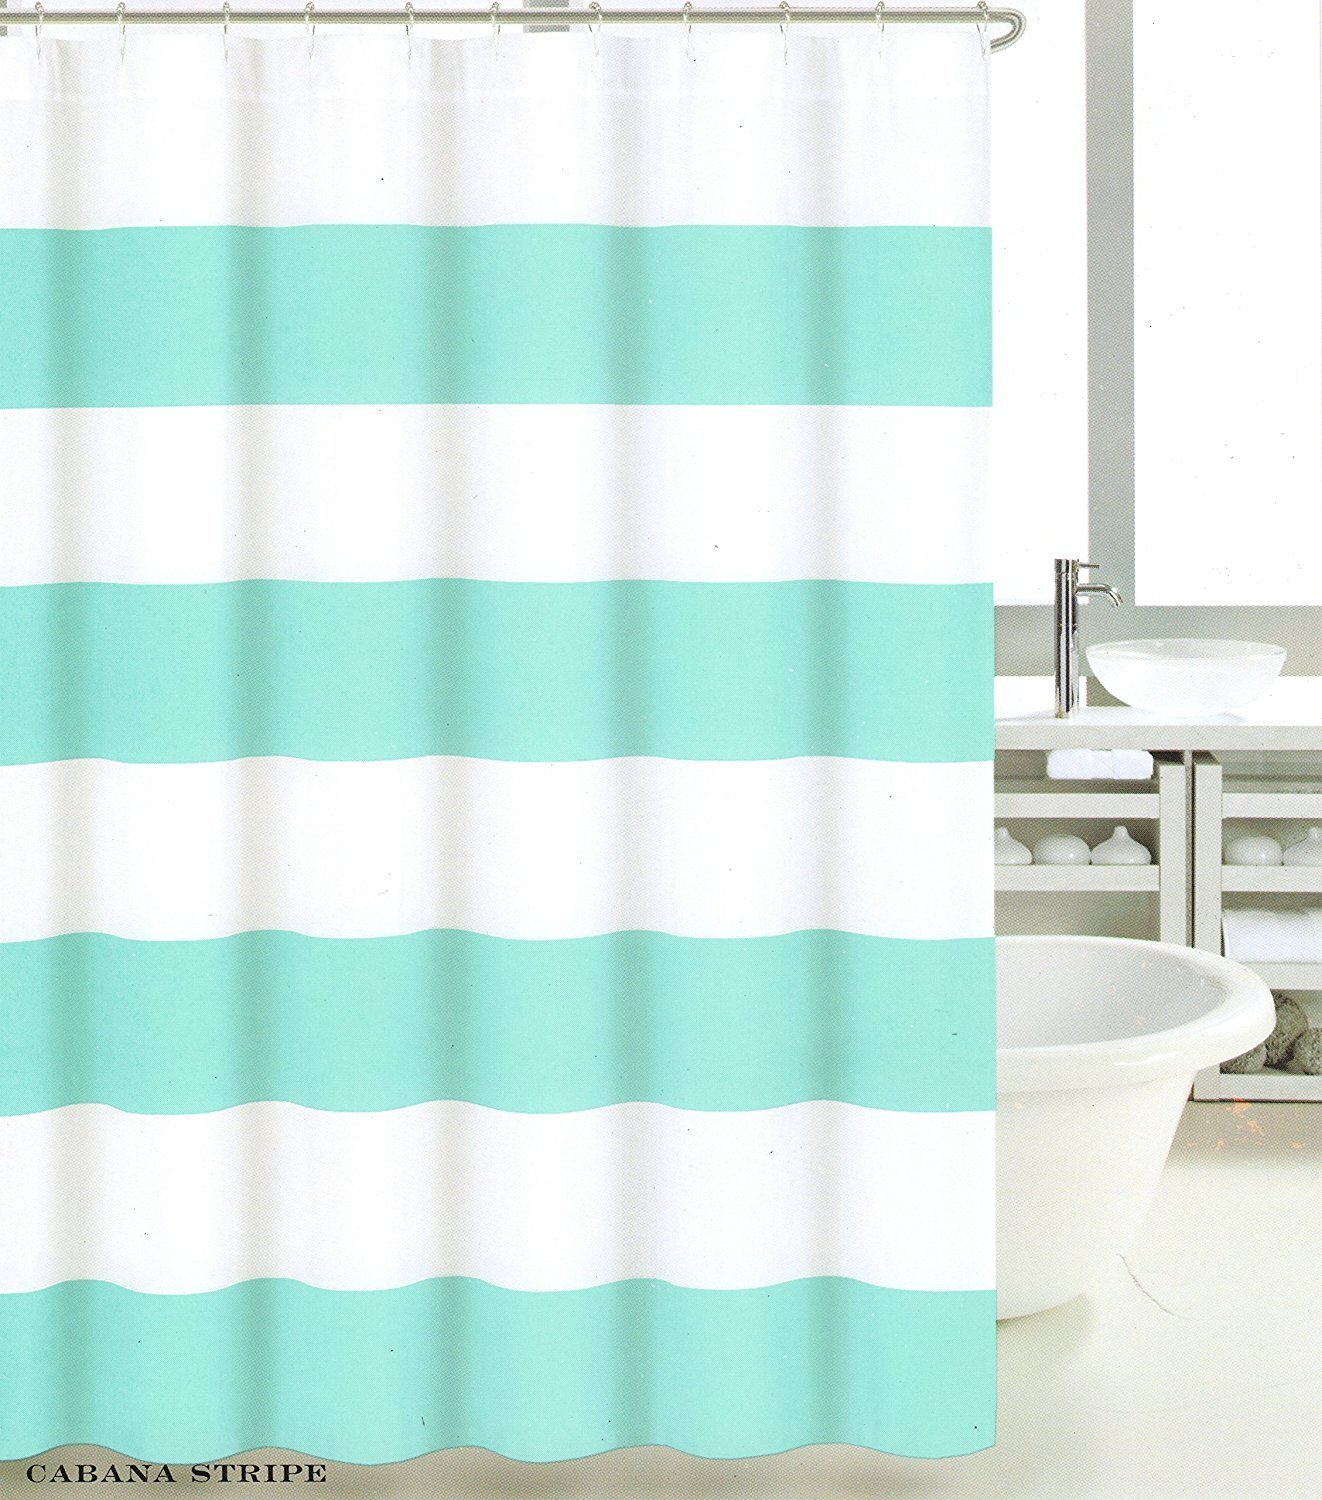 Us 16 58 21 Off Memory Home Polyester Shower Curtain Wide Stripes Fabric Shower Curtain Turquoise Navy Blue Beige 66x72inch In Shower Curtains From